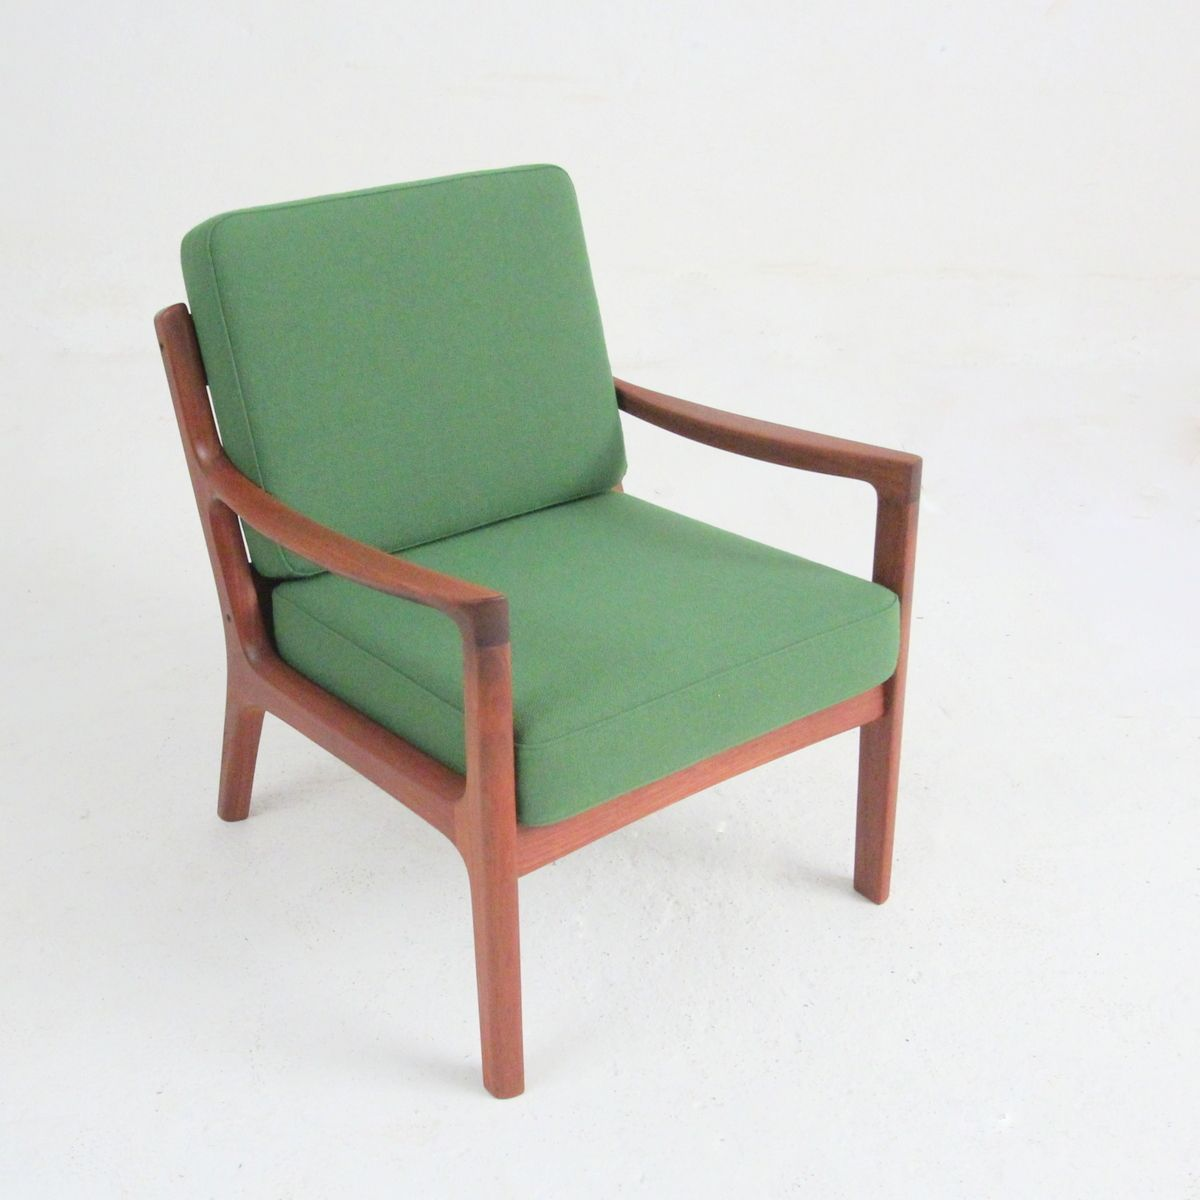 Model 169 Teak Armchair by Ole Wanscher for sale at Pamono